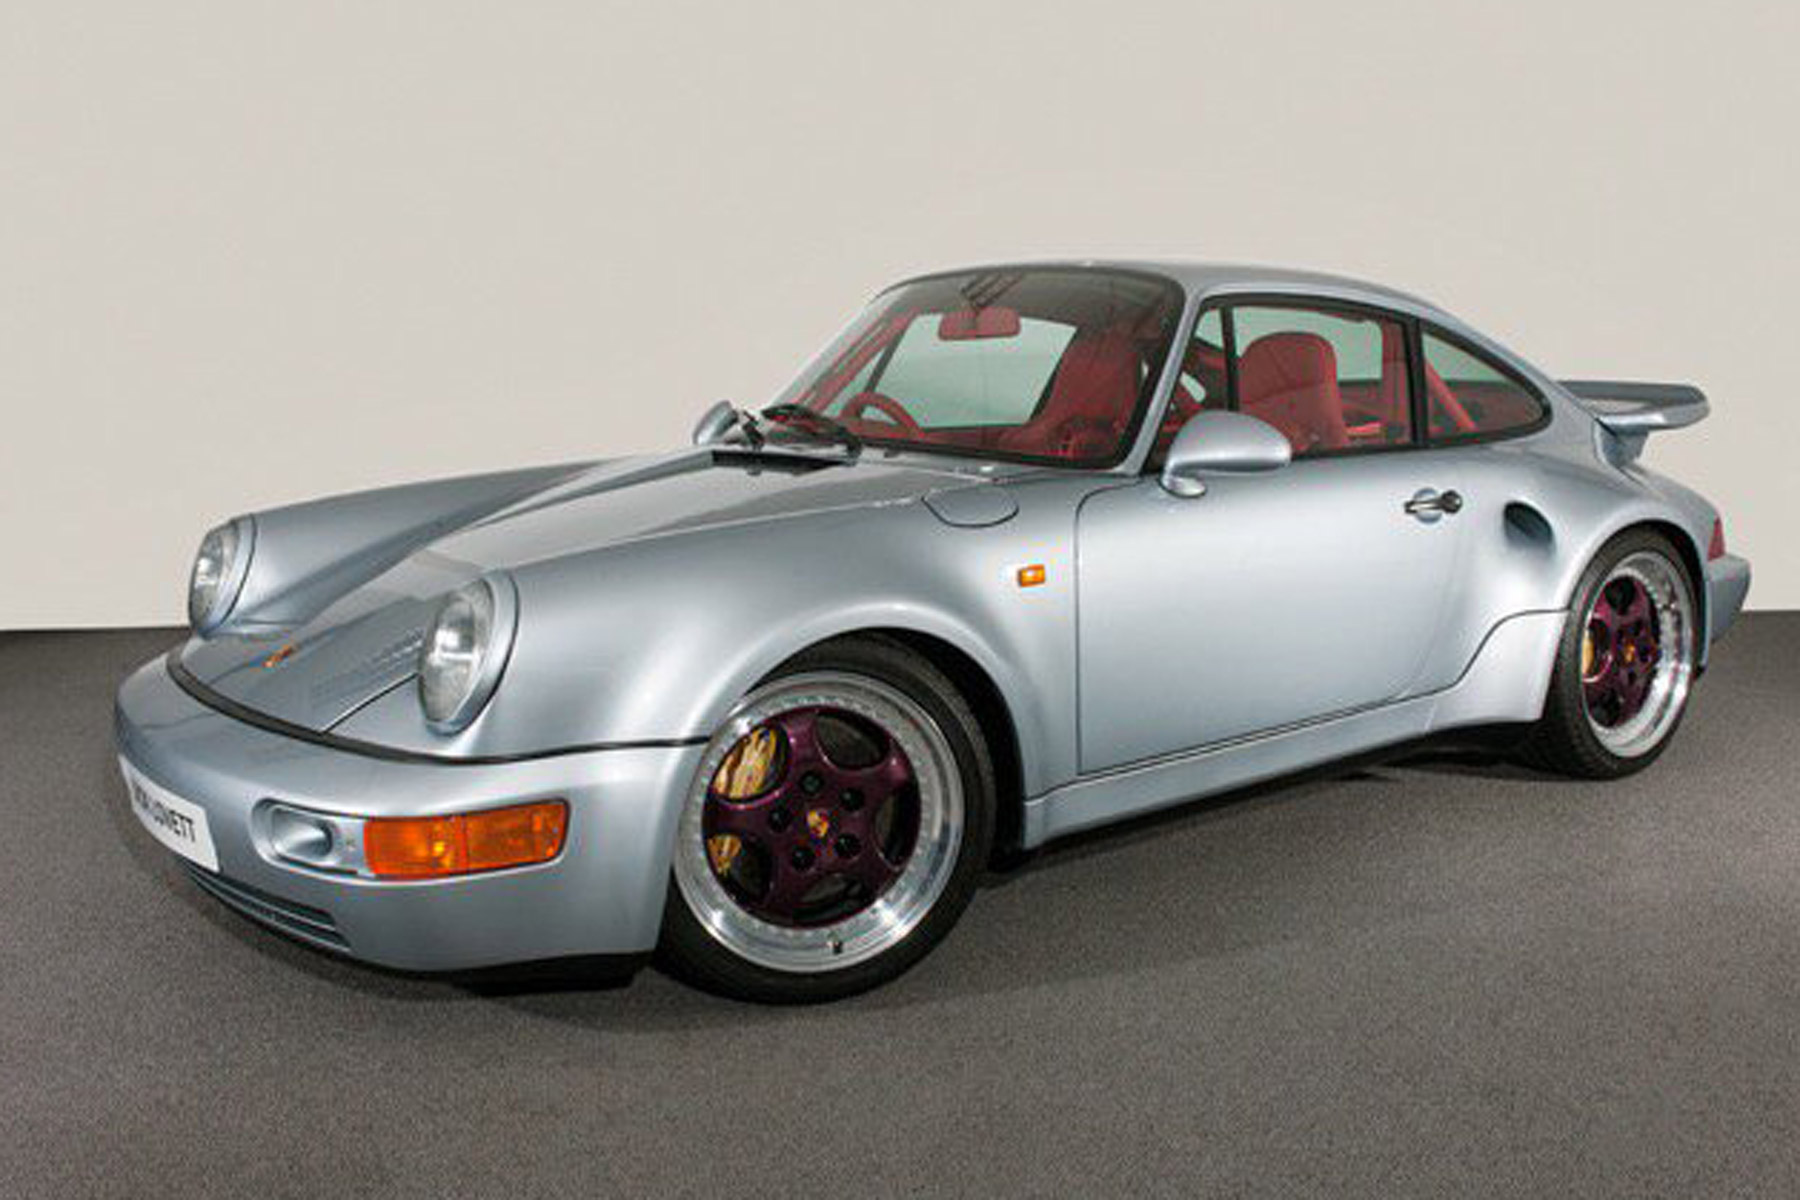 Buy this 'factory fresh' Porsche 911 Turbo for £800,000